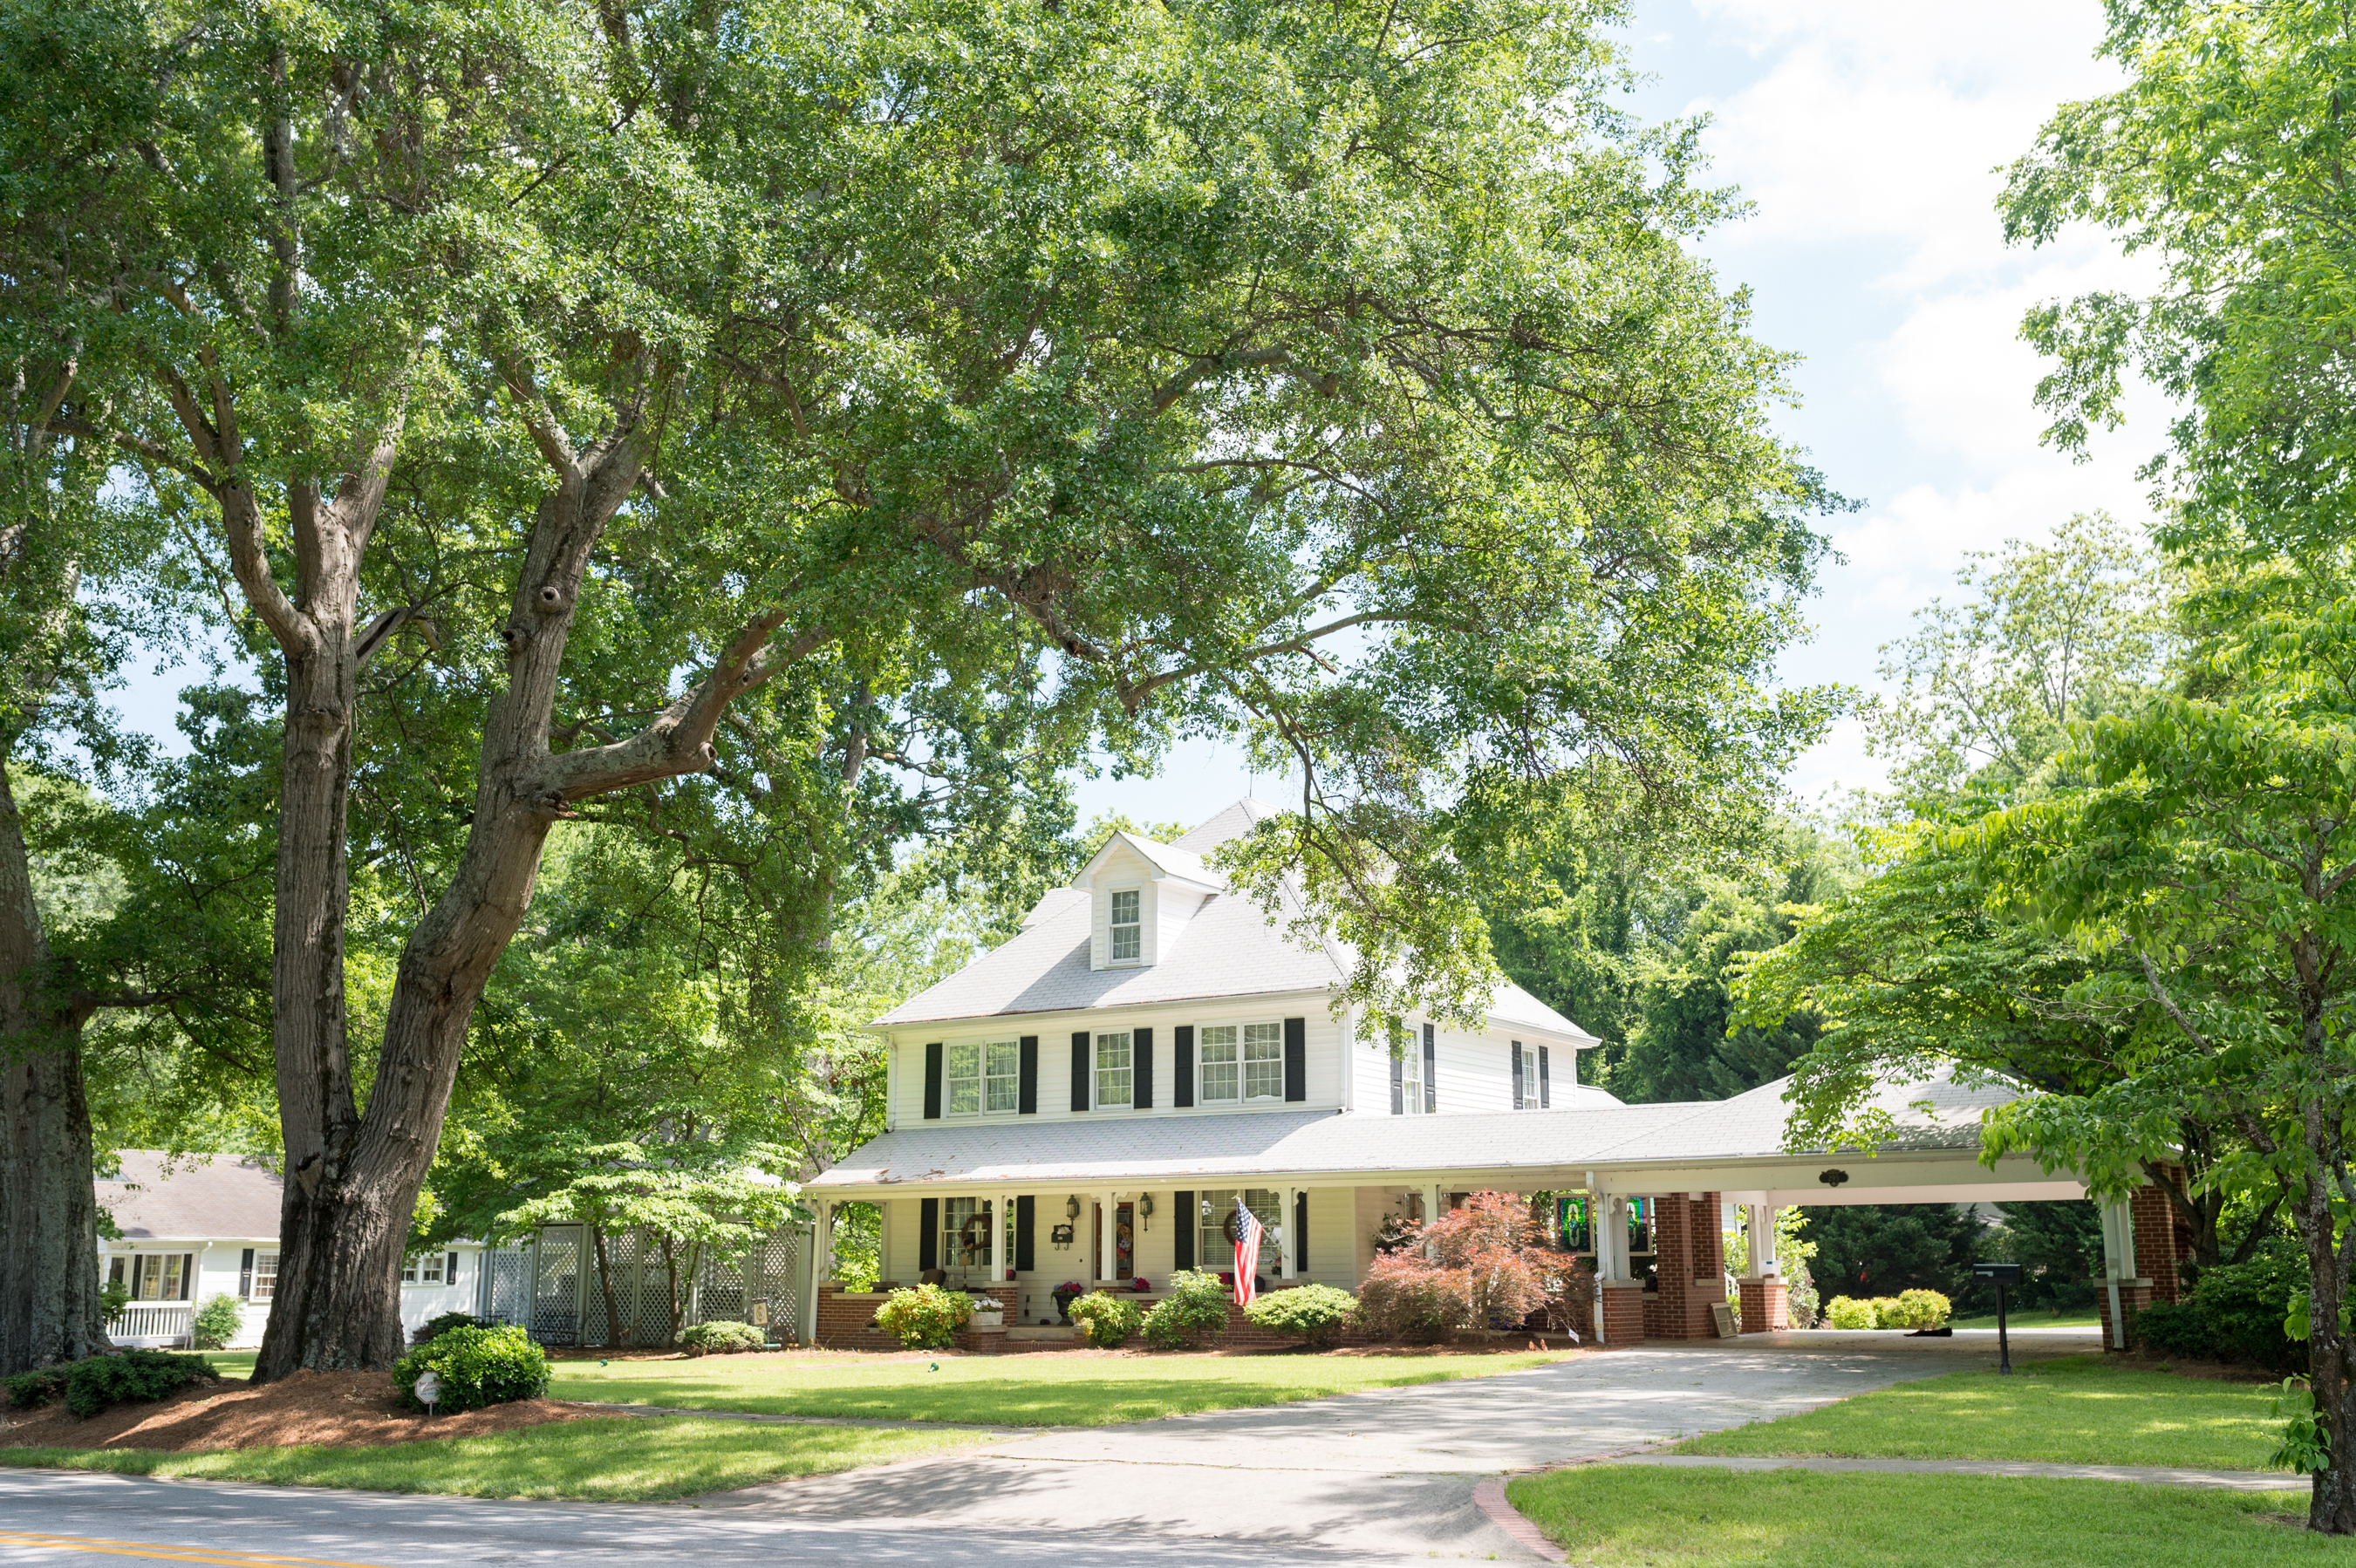 Tallapoosa Historic Home